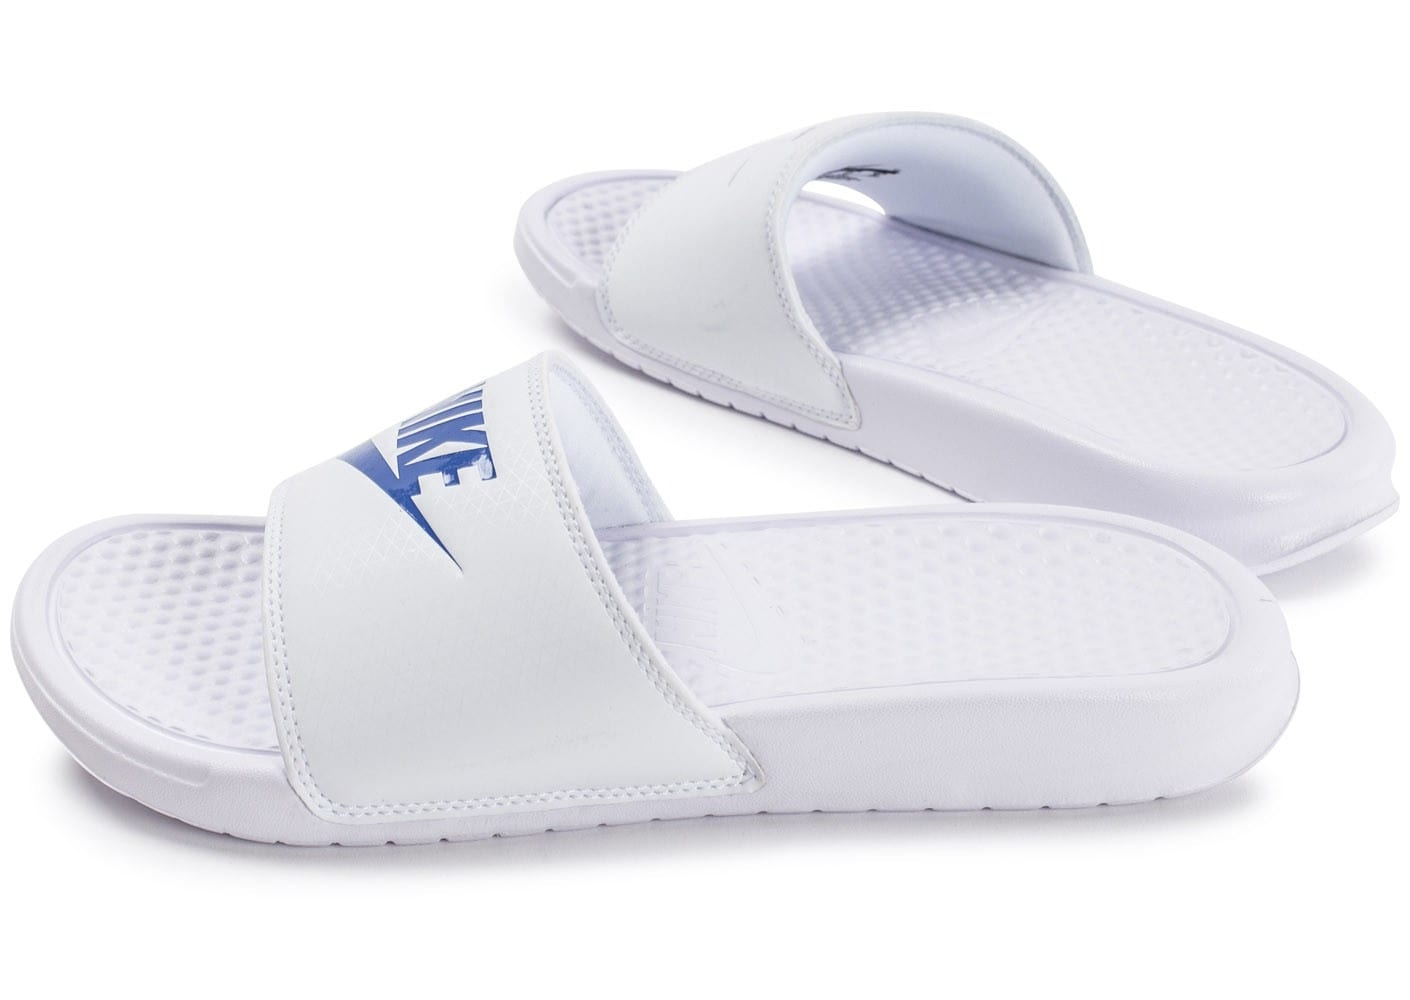 nike benassi just do it blanche et bleue chaussures homme chausport. Black Bedroom Furniture Sets. Home Design Ideas